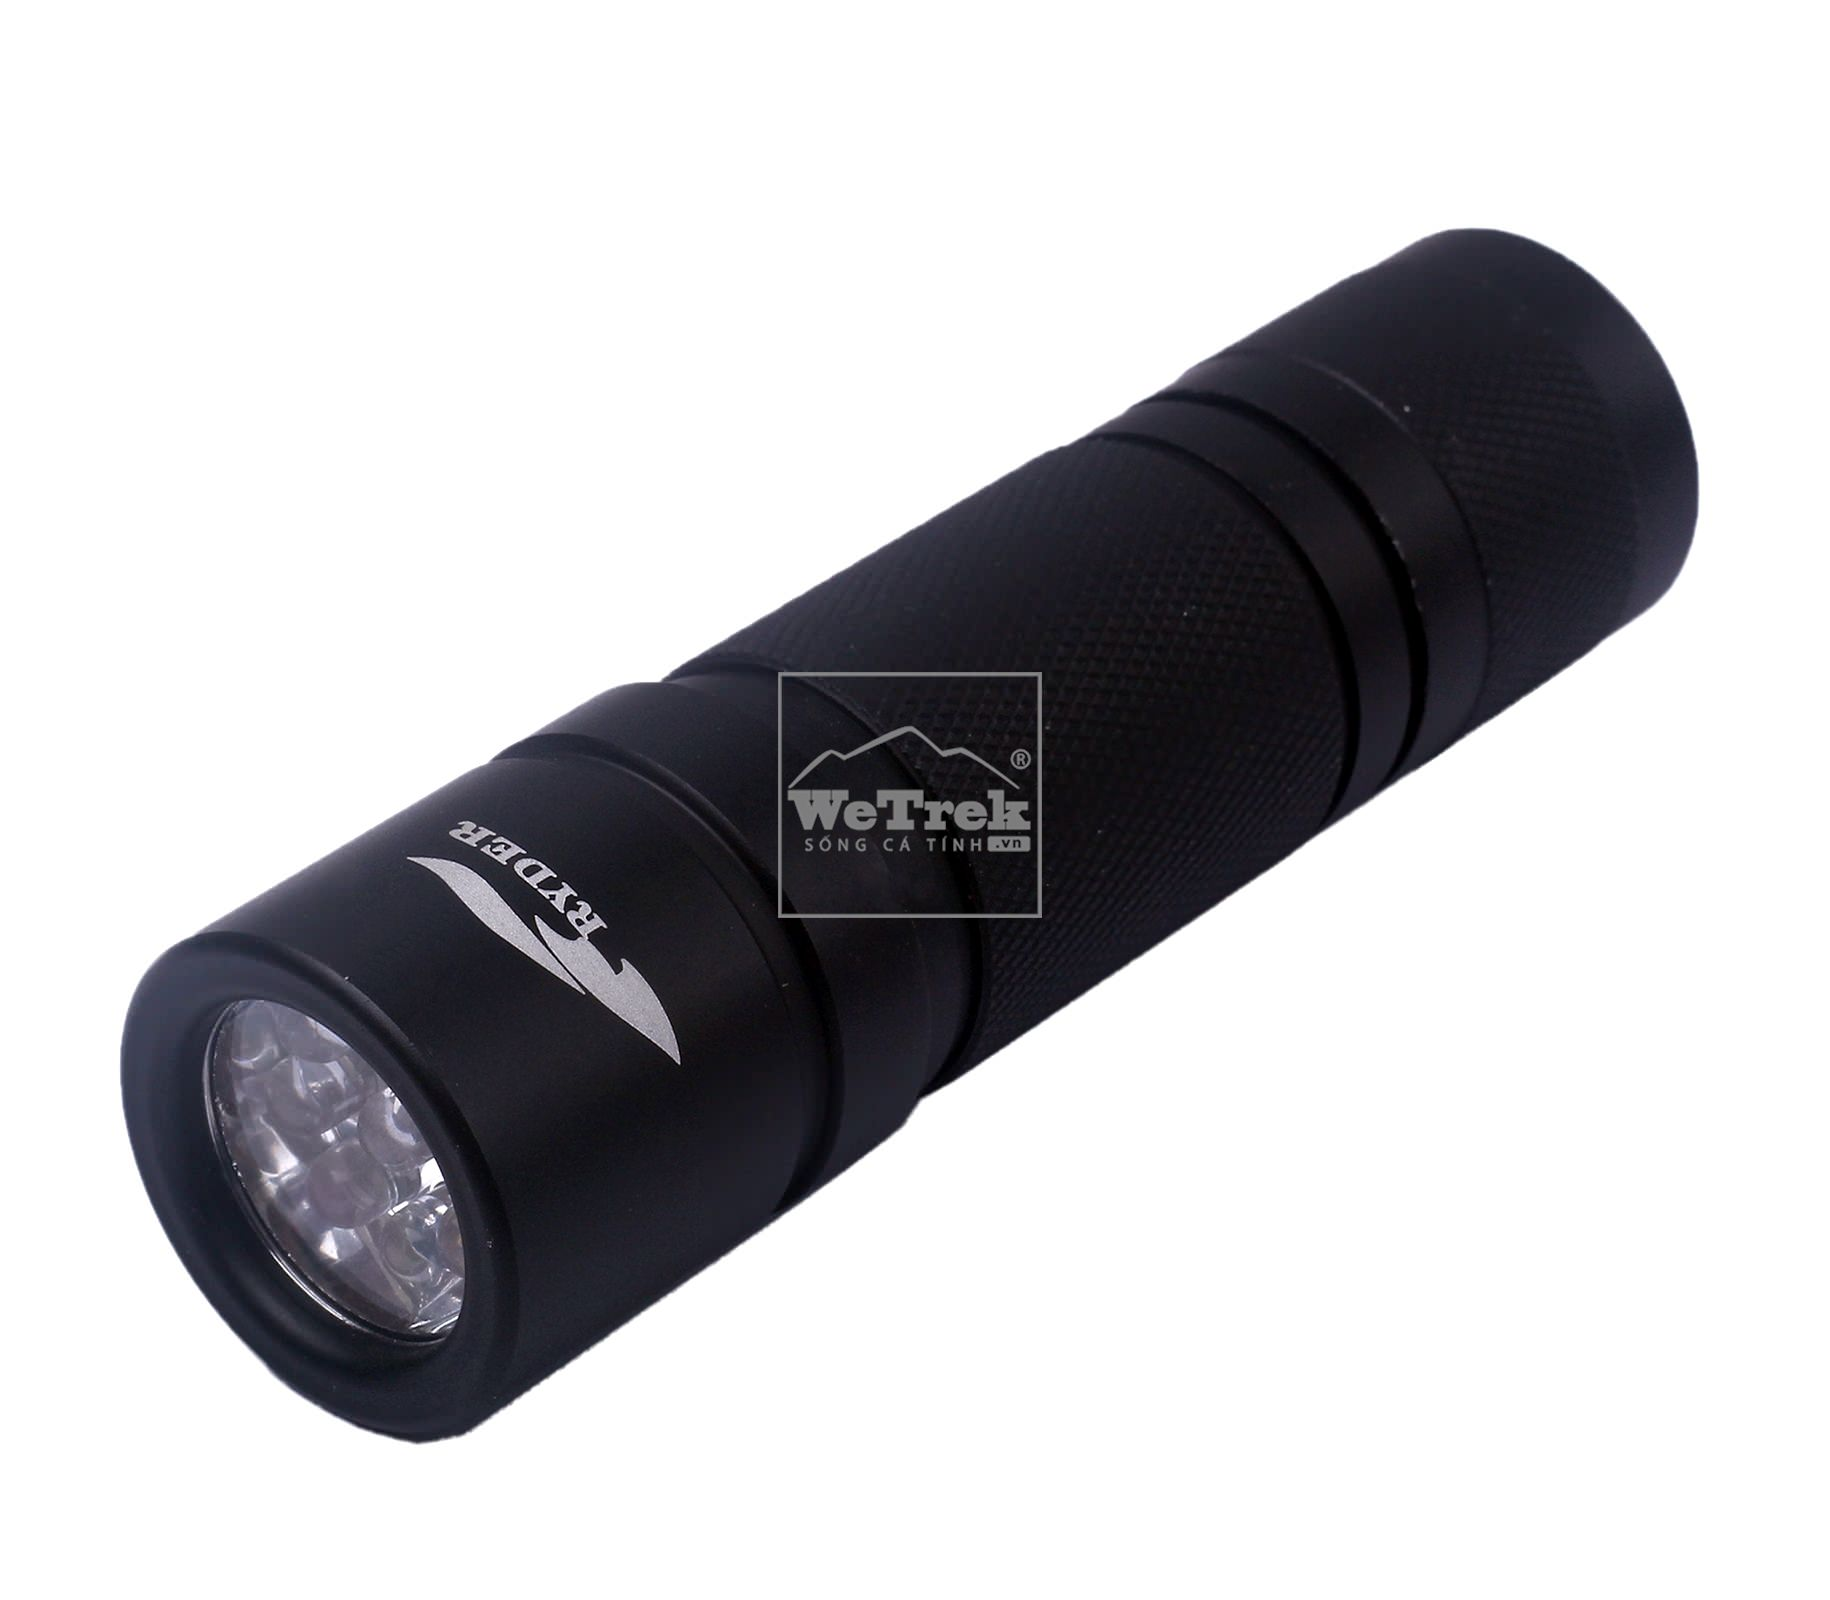 Đèn pin lặn 9 LED Ryder Ryder Diving Aluminium Torch K0001 - 6721